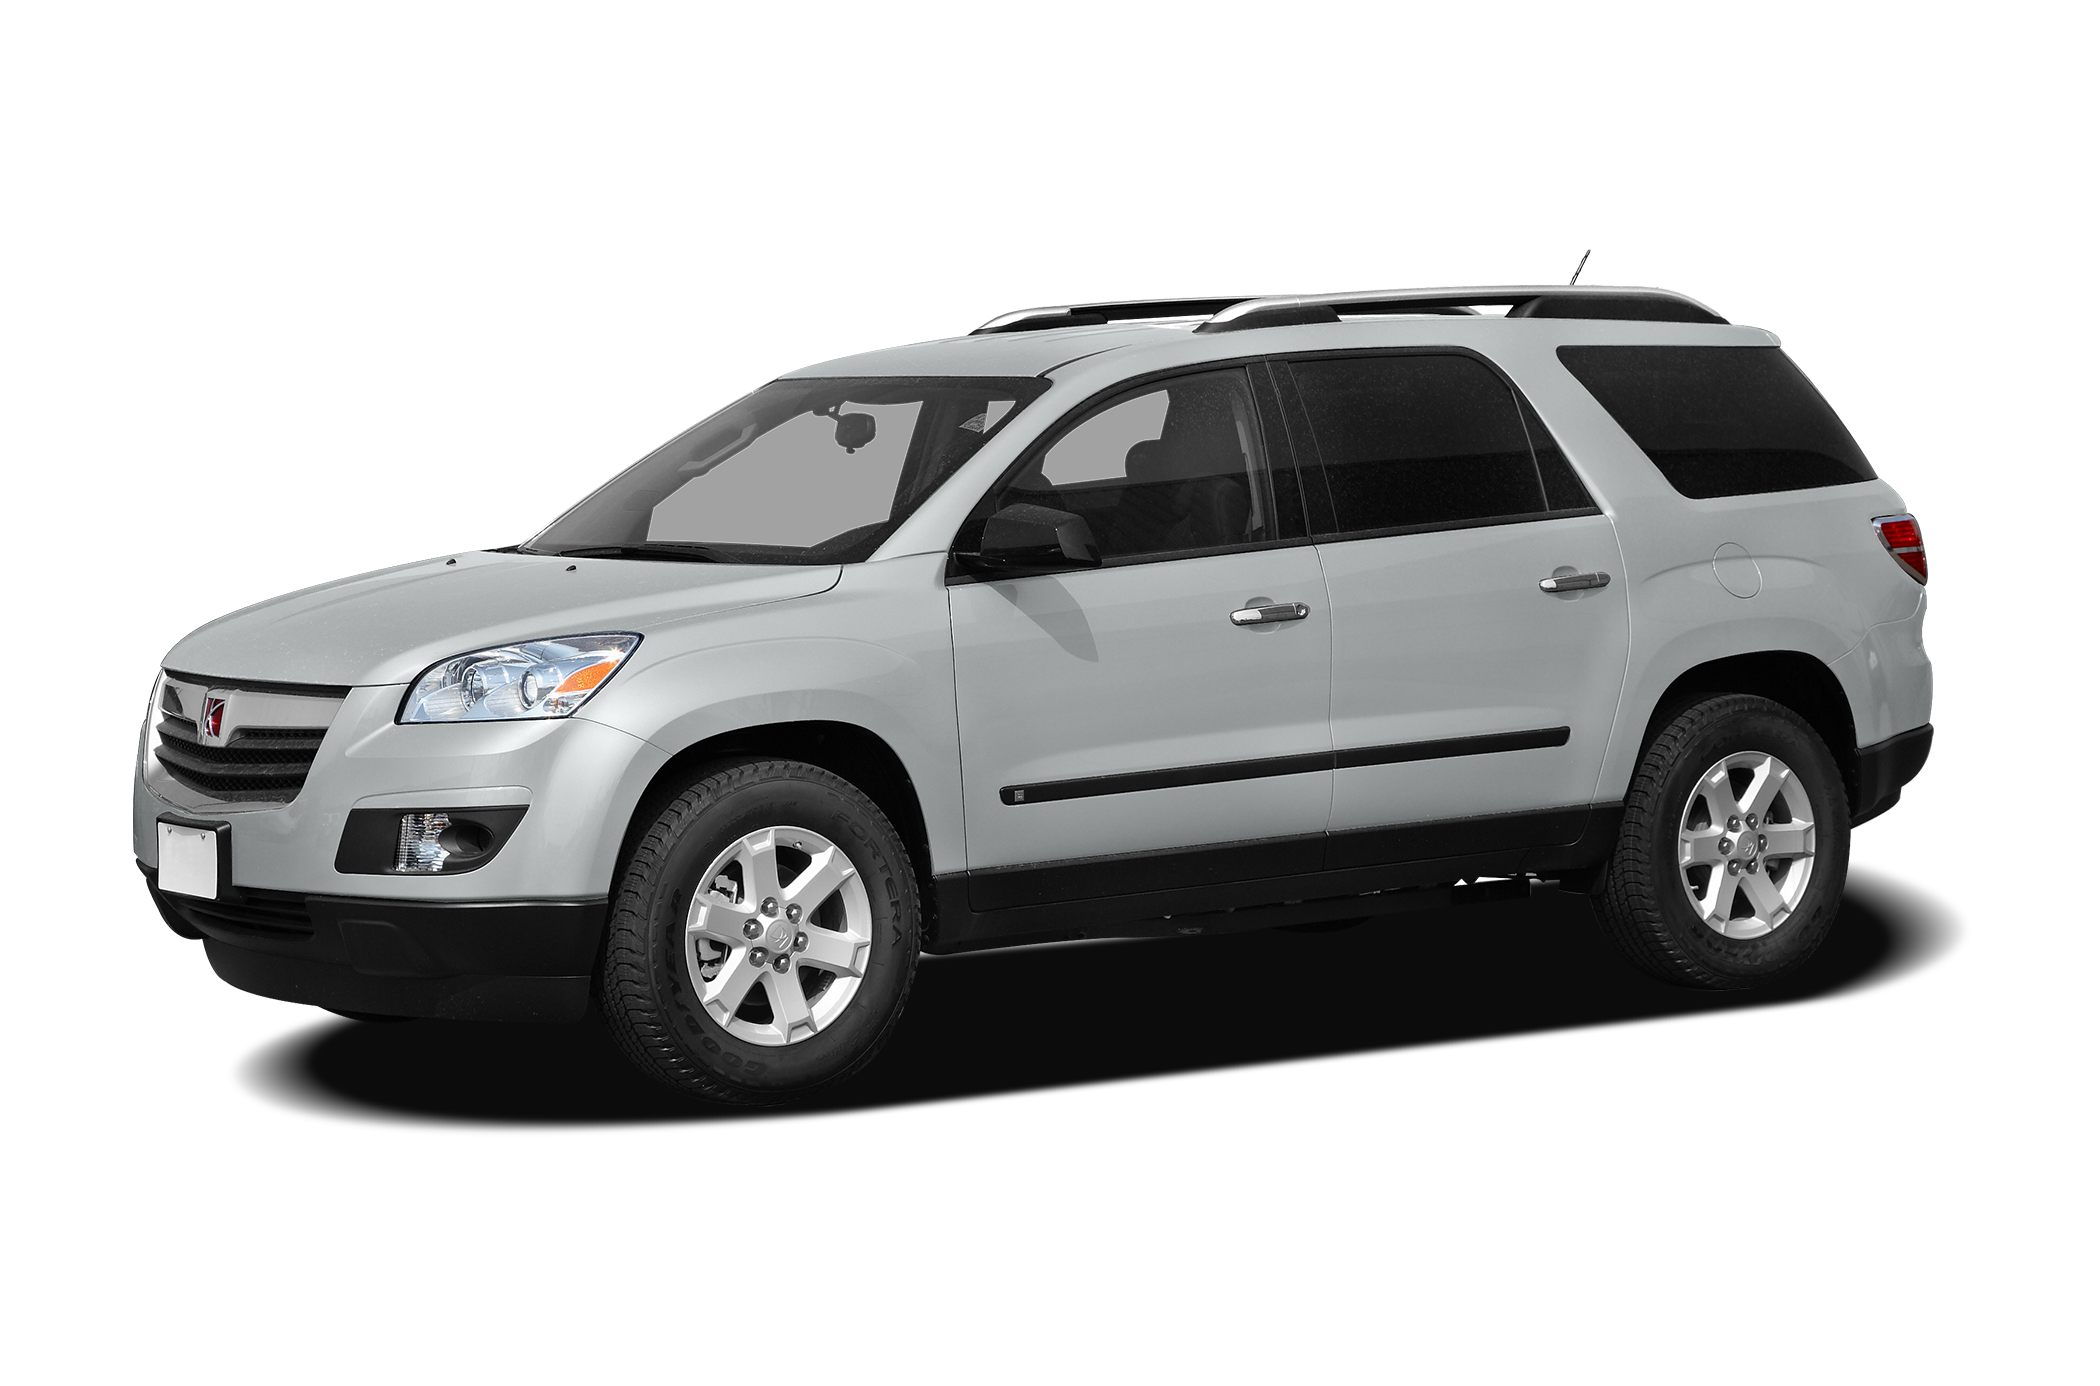 2009 Saturn Outlook XE SUV for sale in Morrow for $13,995 with 61,141 miles